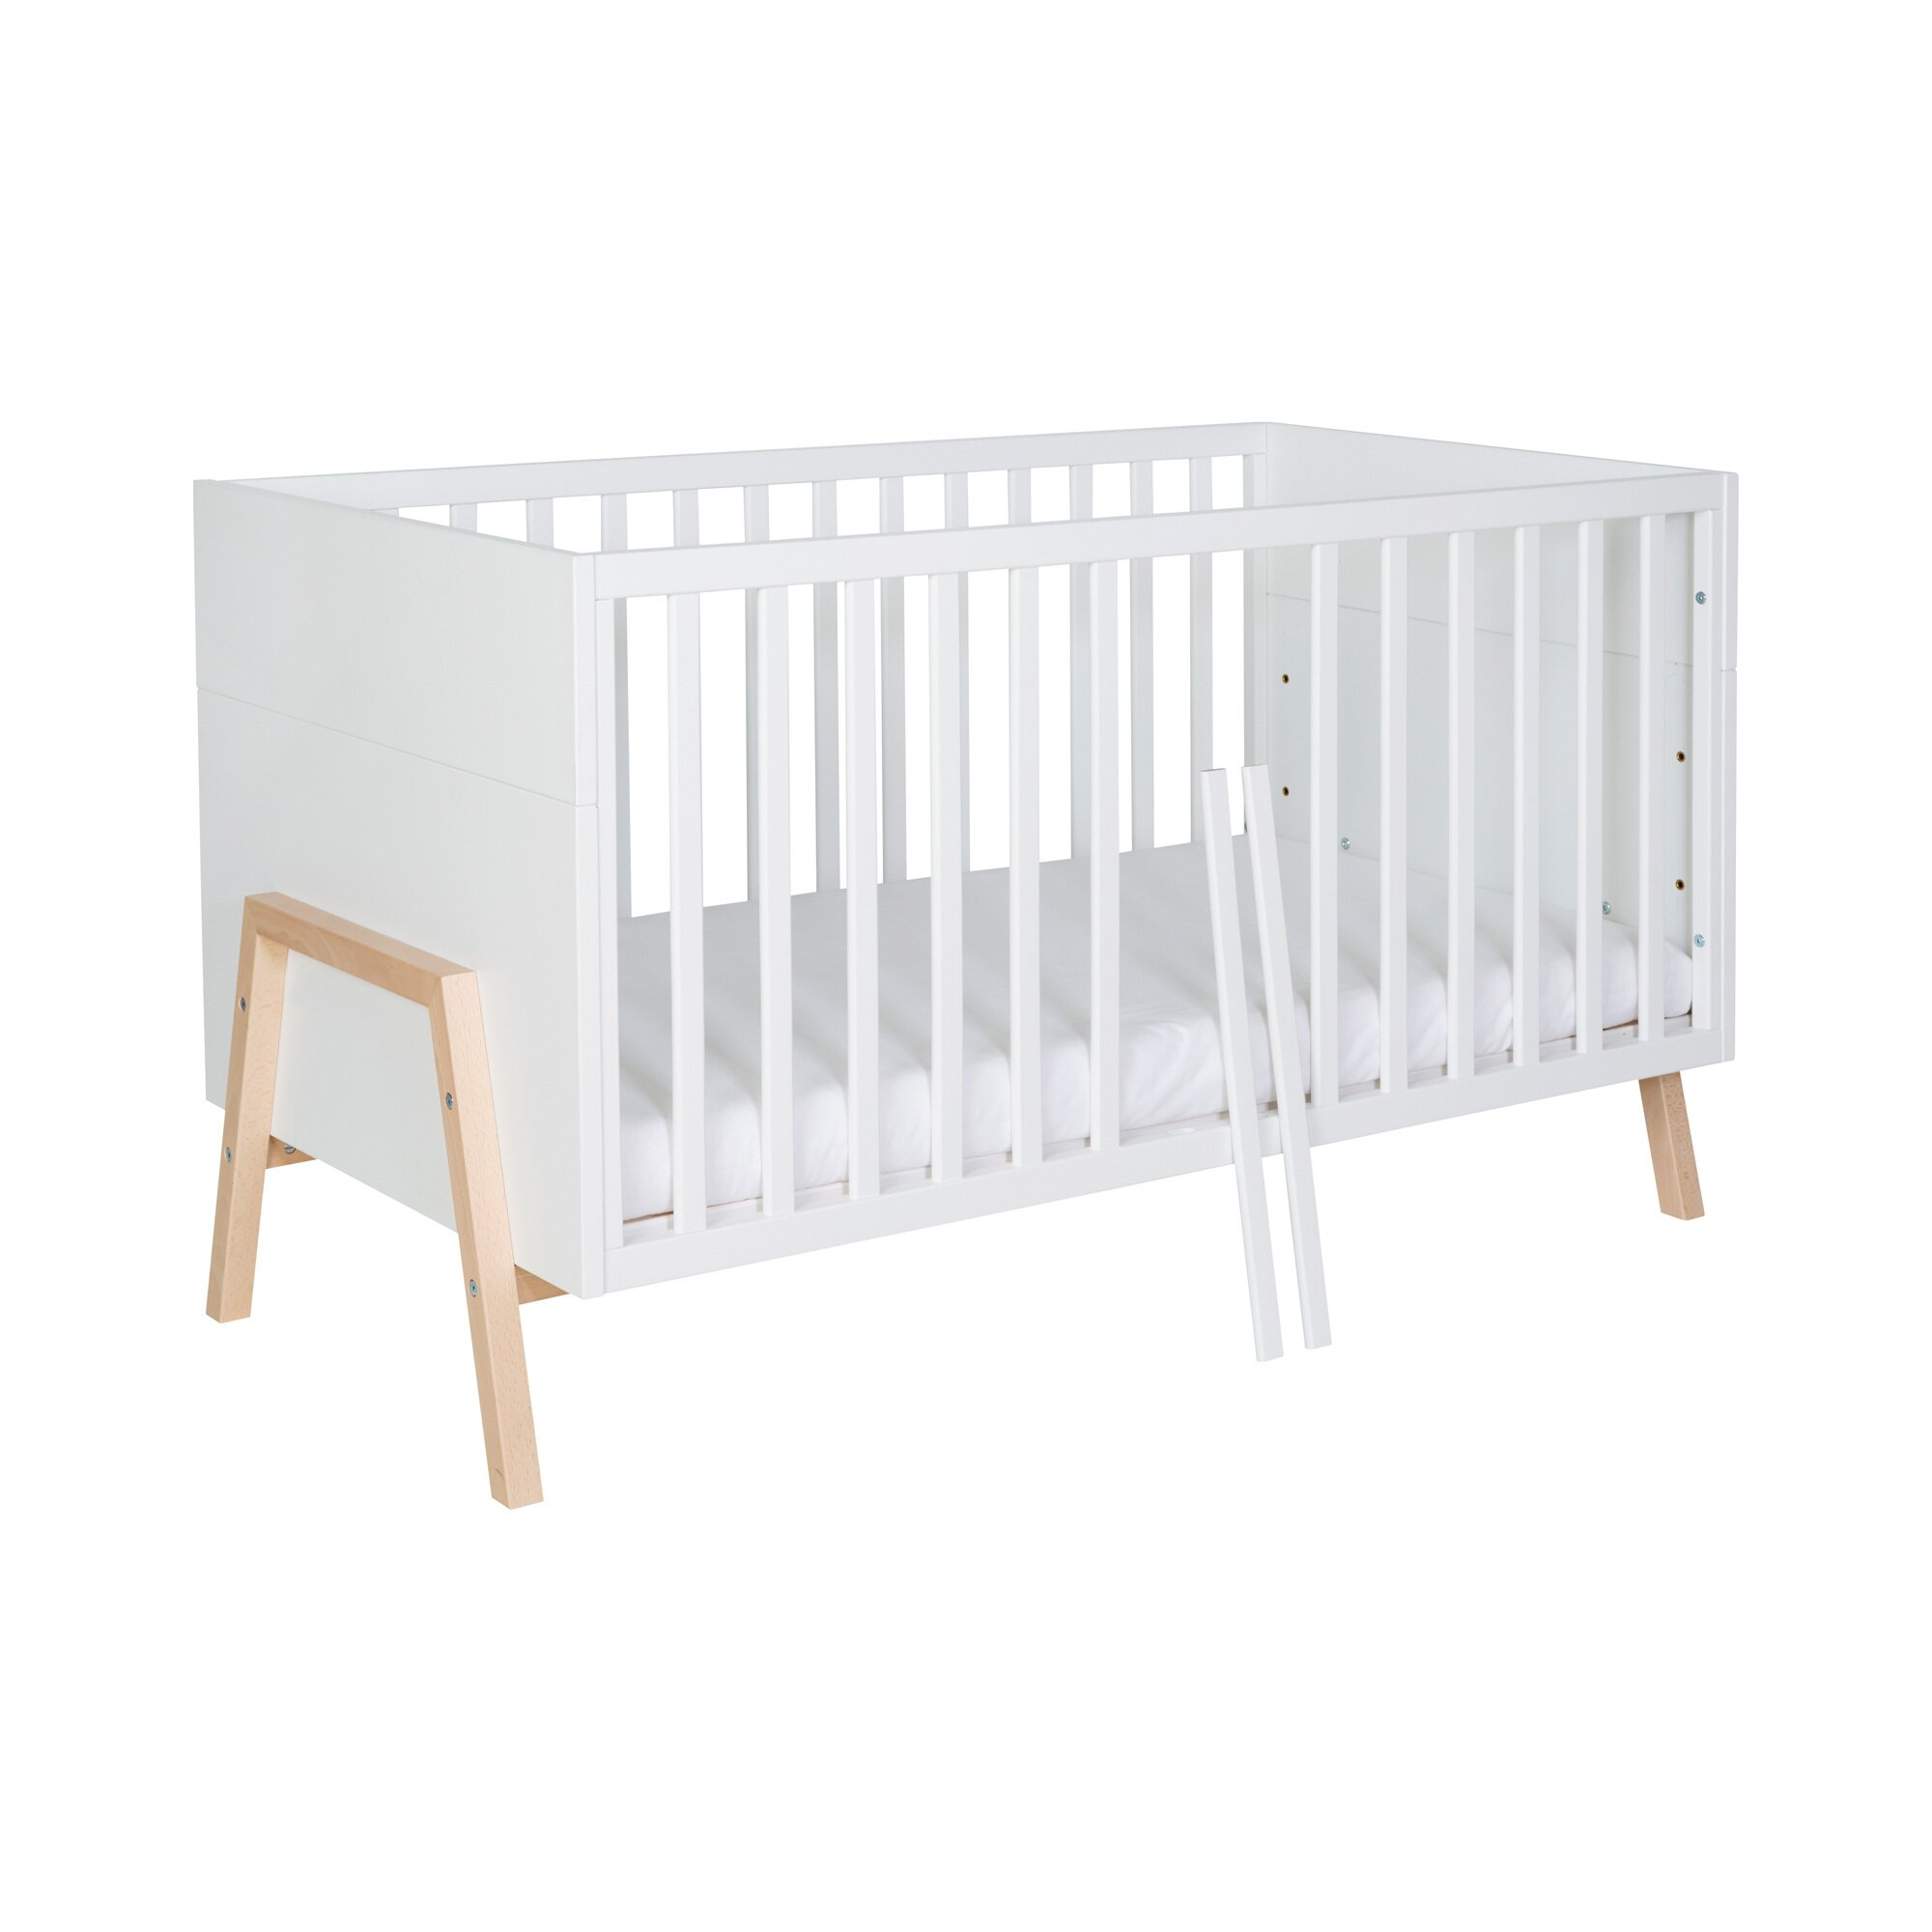 schardt-2-tlg-babyzimmer-holly-nature